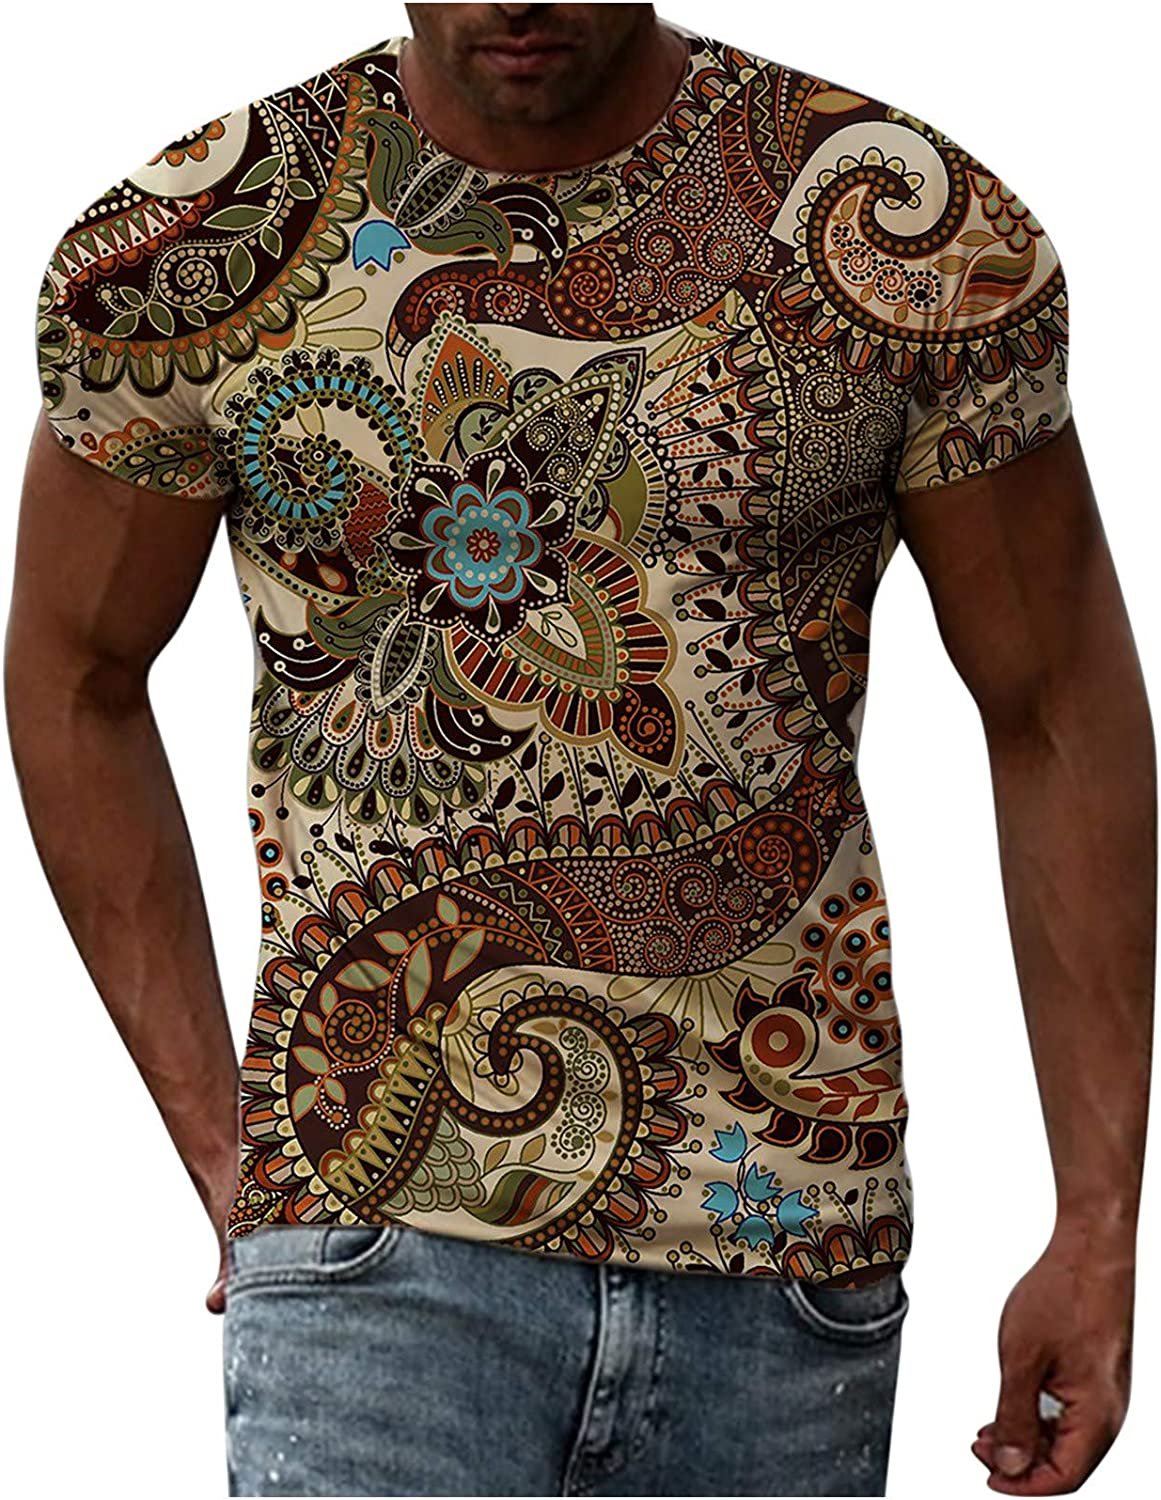 FUNEY Summer T Shirts for Men Casual Short Sleeve Crewneck Tops 3D Printed Vintage Graphic Tees Novelty Design T-Shirts